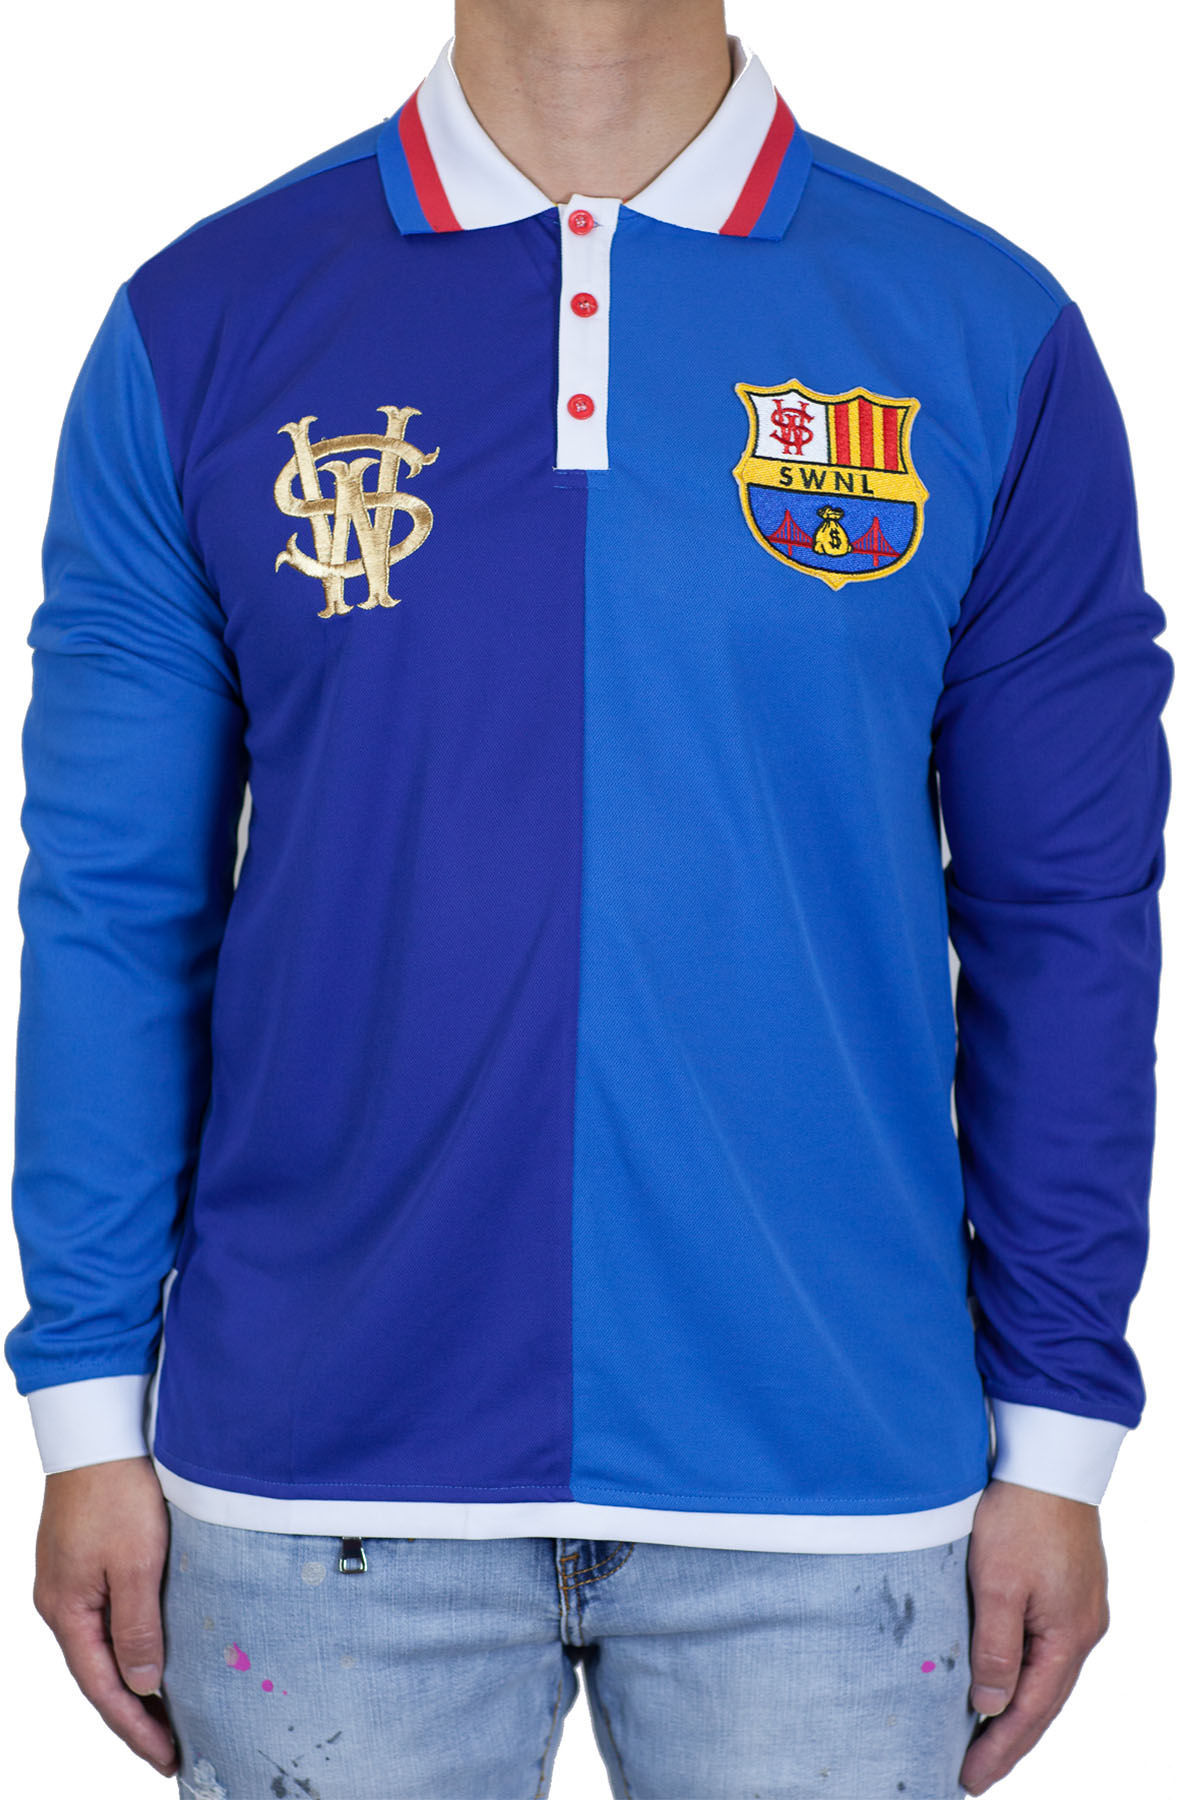 Image of Stay Winning Long Sleeve Royal Blue Soccer Polo Tee